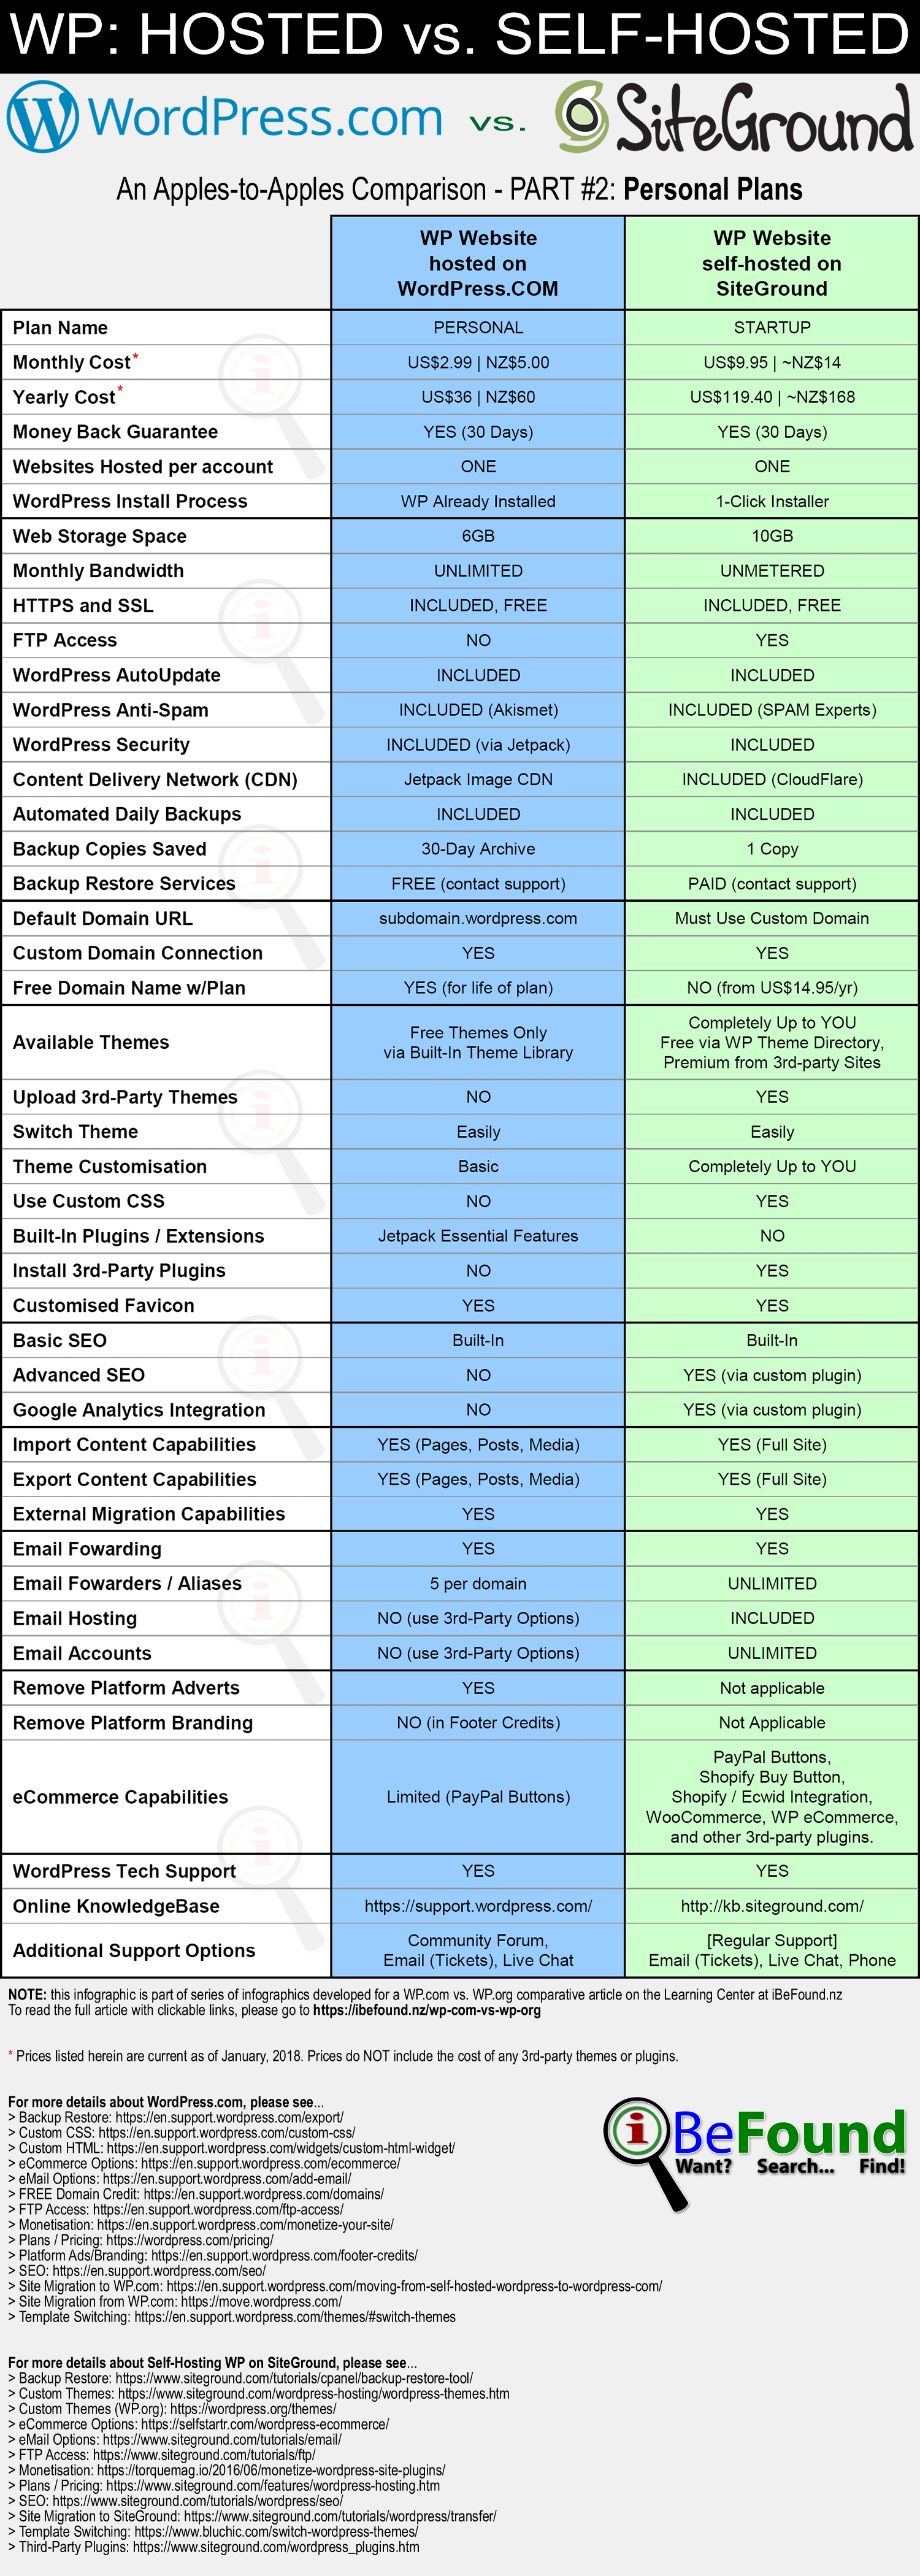 Hosted WordPress Versus Self Hosted WP On SiteGround 2018 Comparison Infographic Pt2 Personal Plans